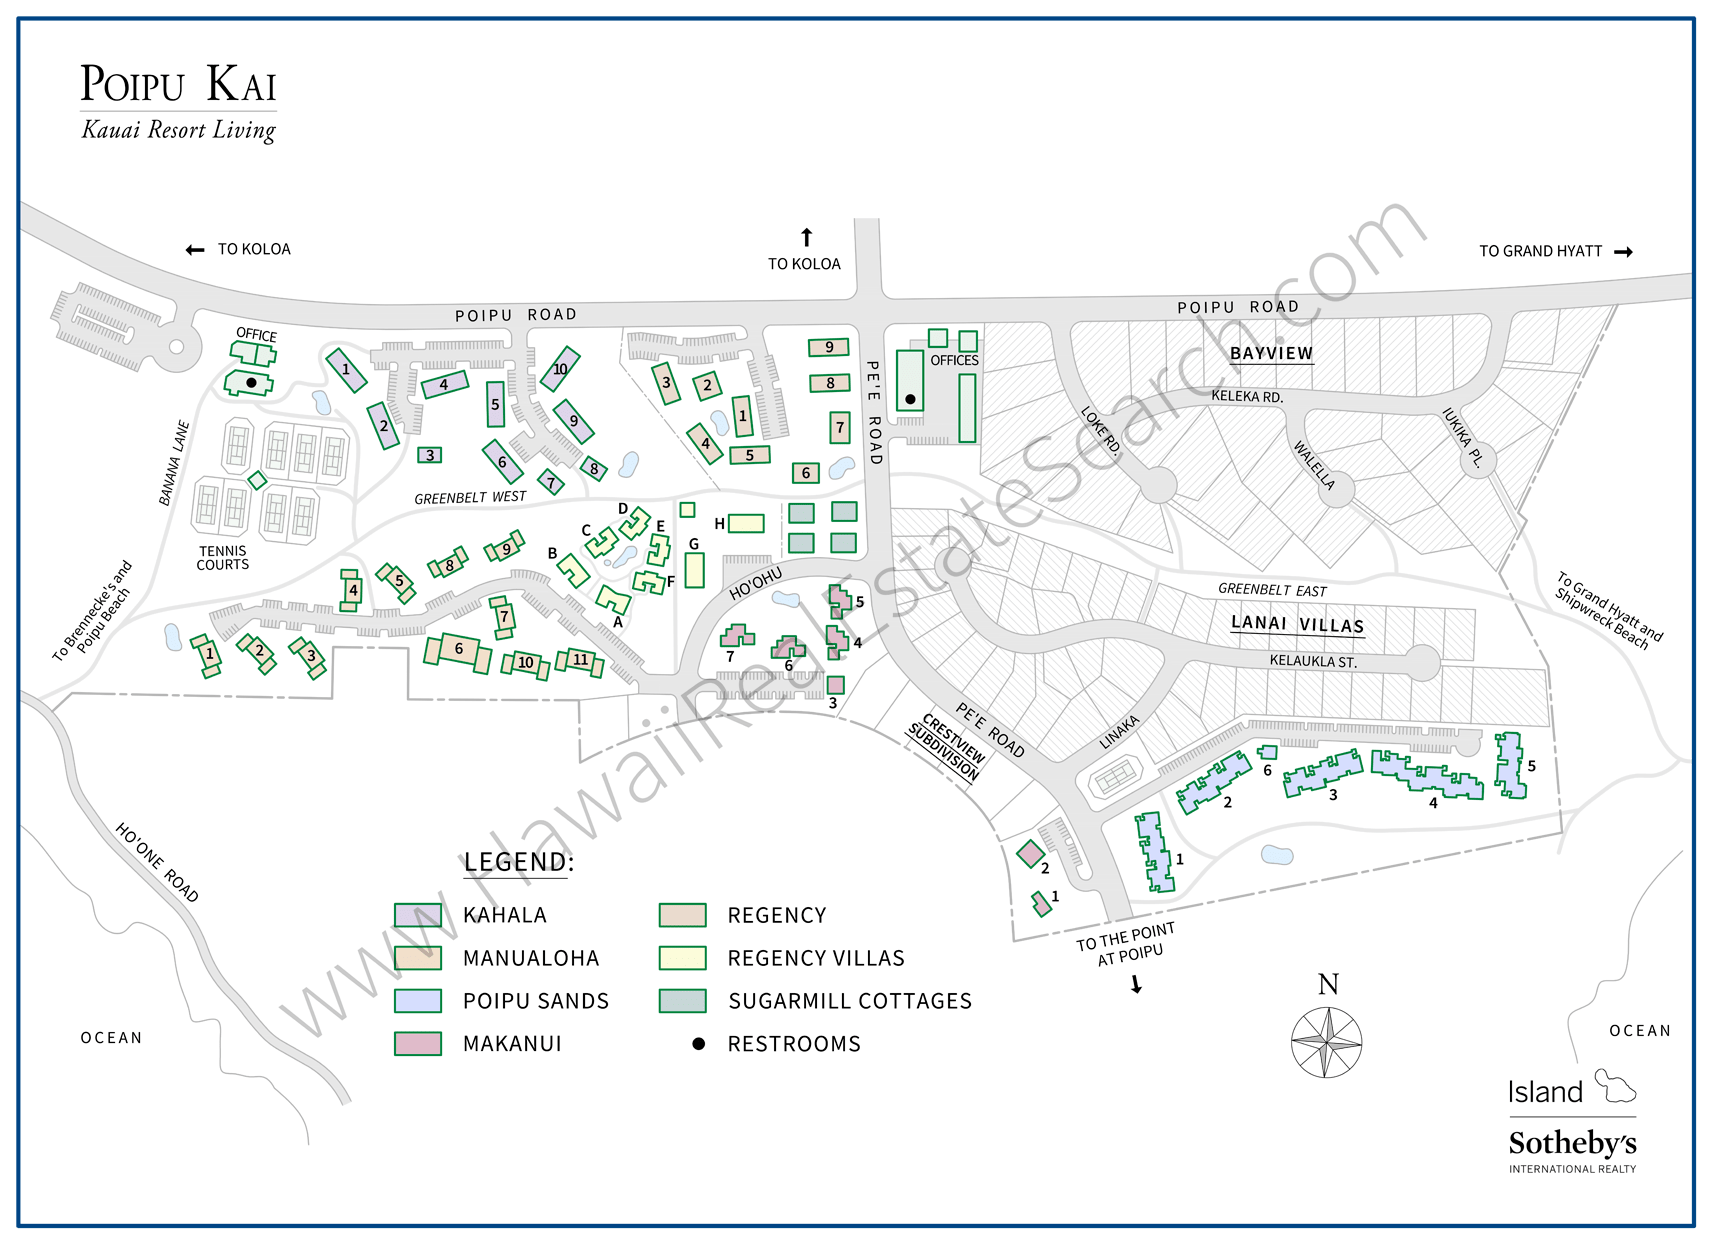 Poipu Kai Resort Map Updated